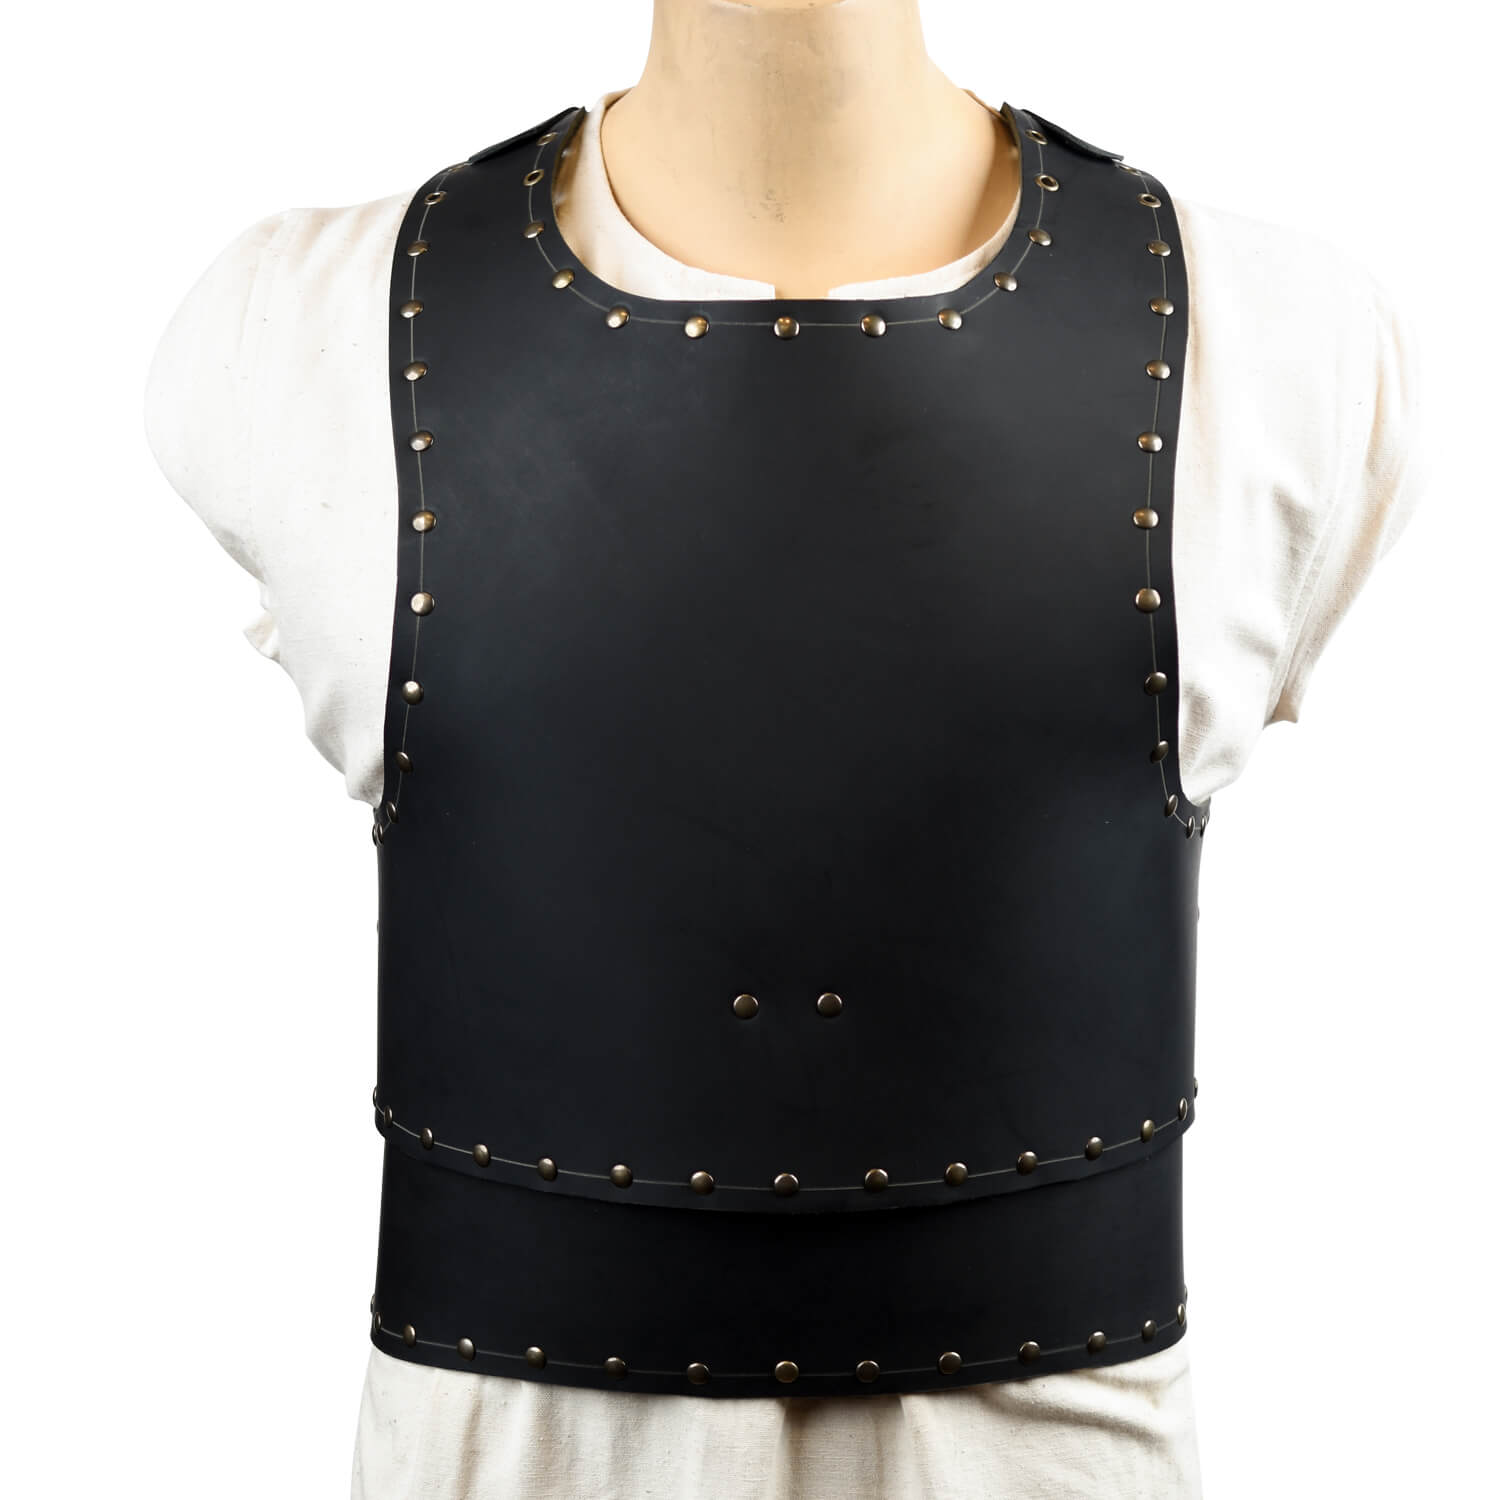 Basic Breastplate